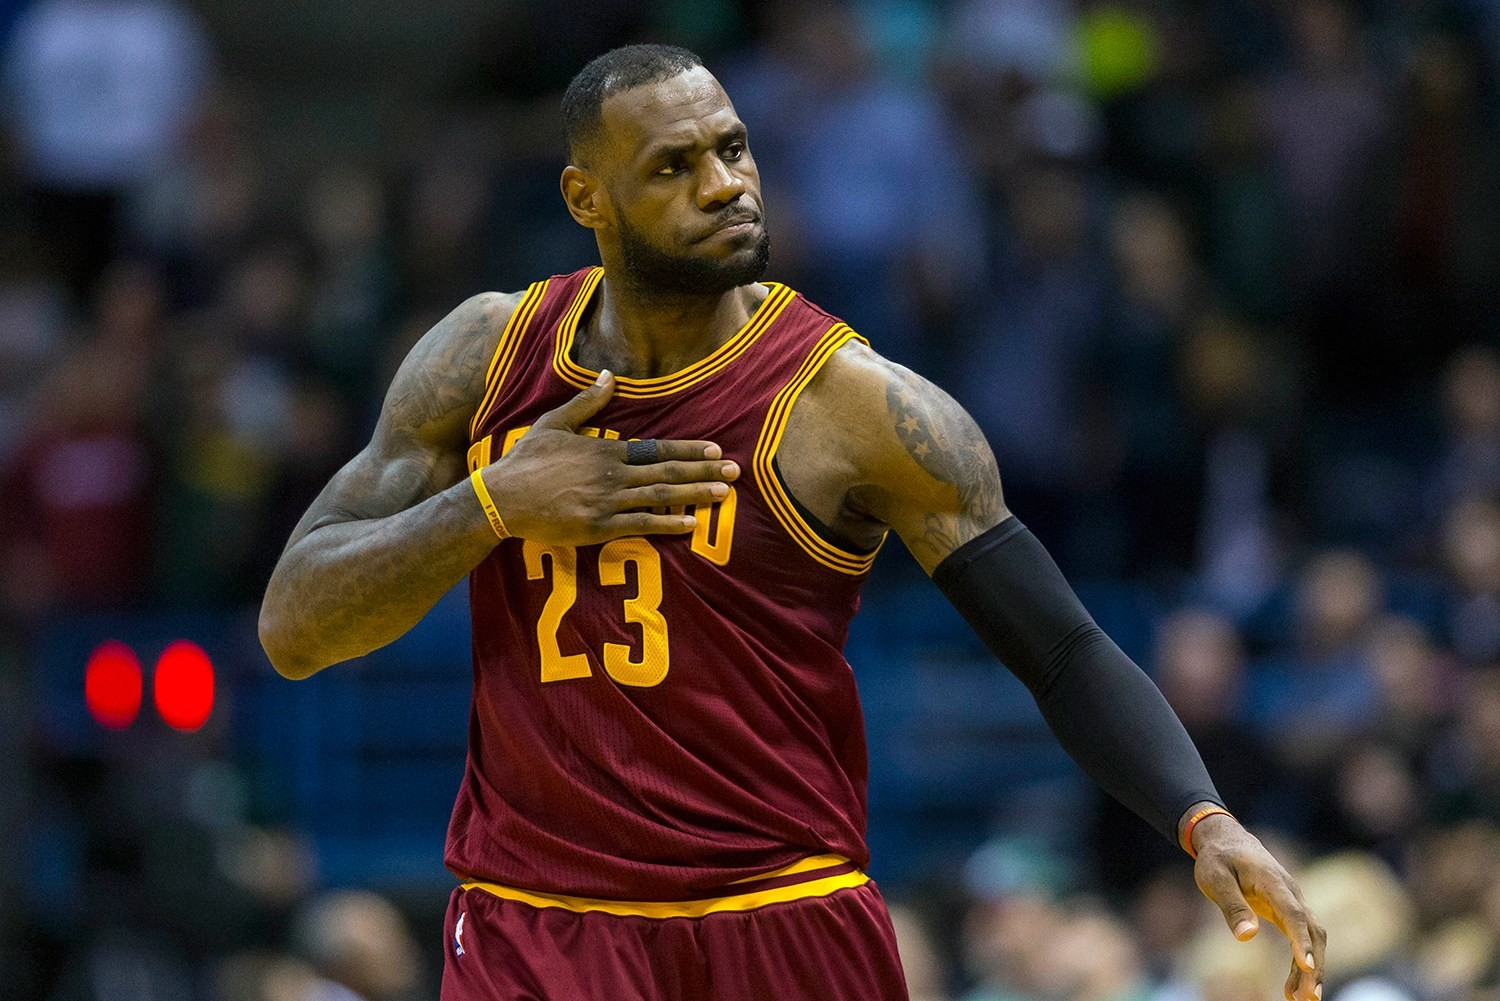 Nike's Latest Lebron James Contract Seals a Lifetime Deal With the NBA Superstar